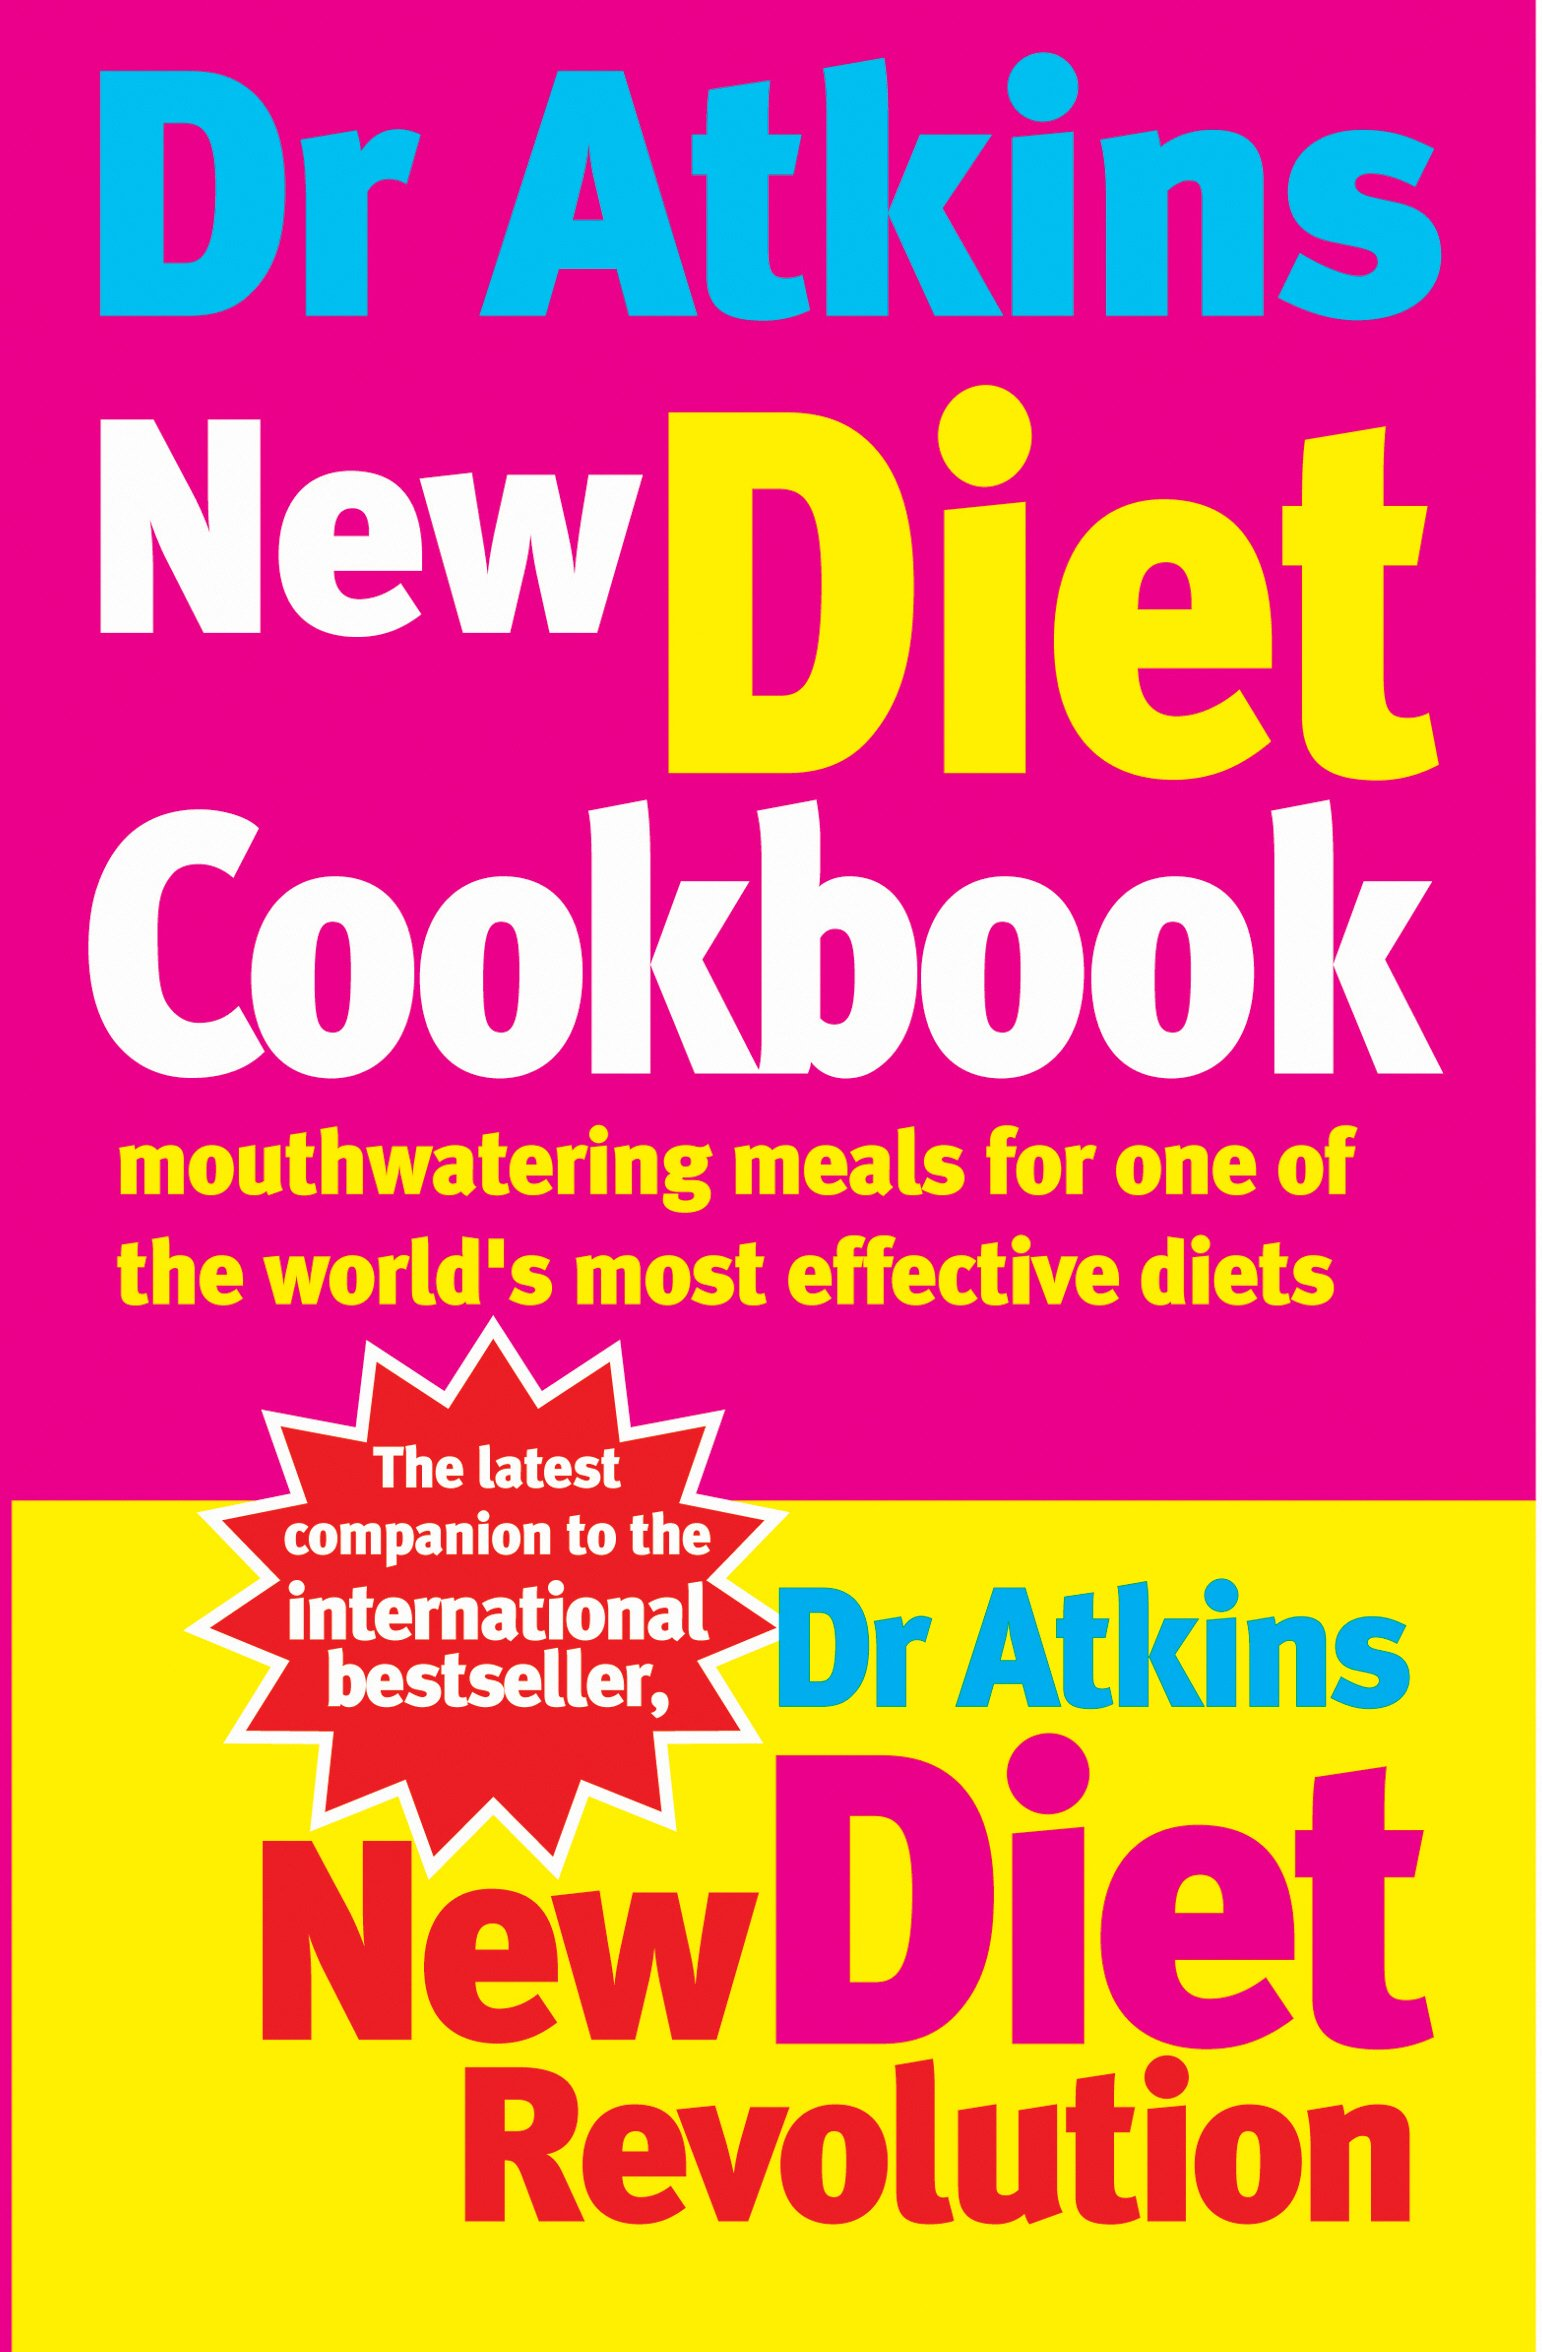 Download Dr Atkins New Diet Cookbook: Mouth-Watering Meals to Accompany the Most Effective Diet Ever Devised PDF